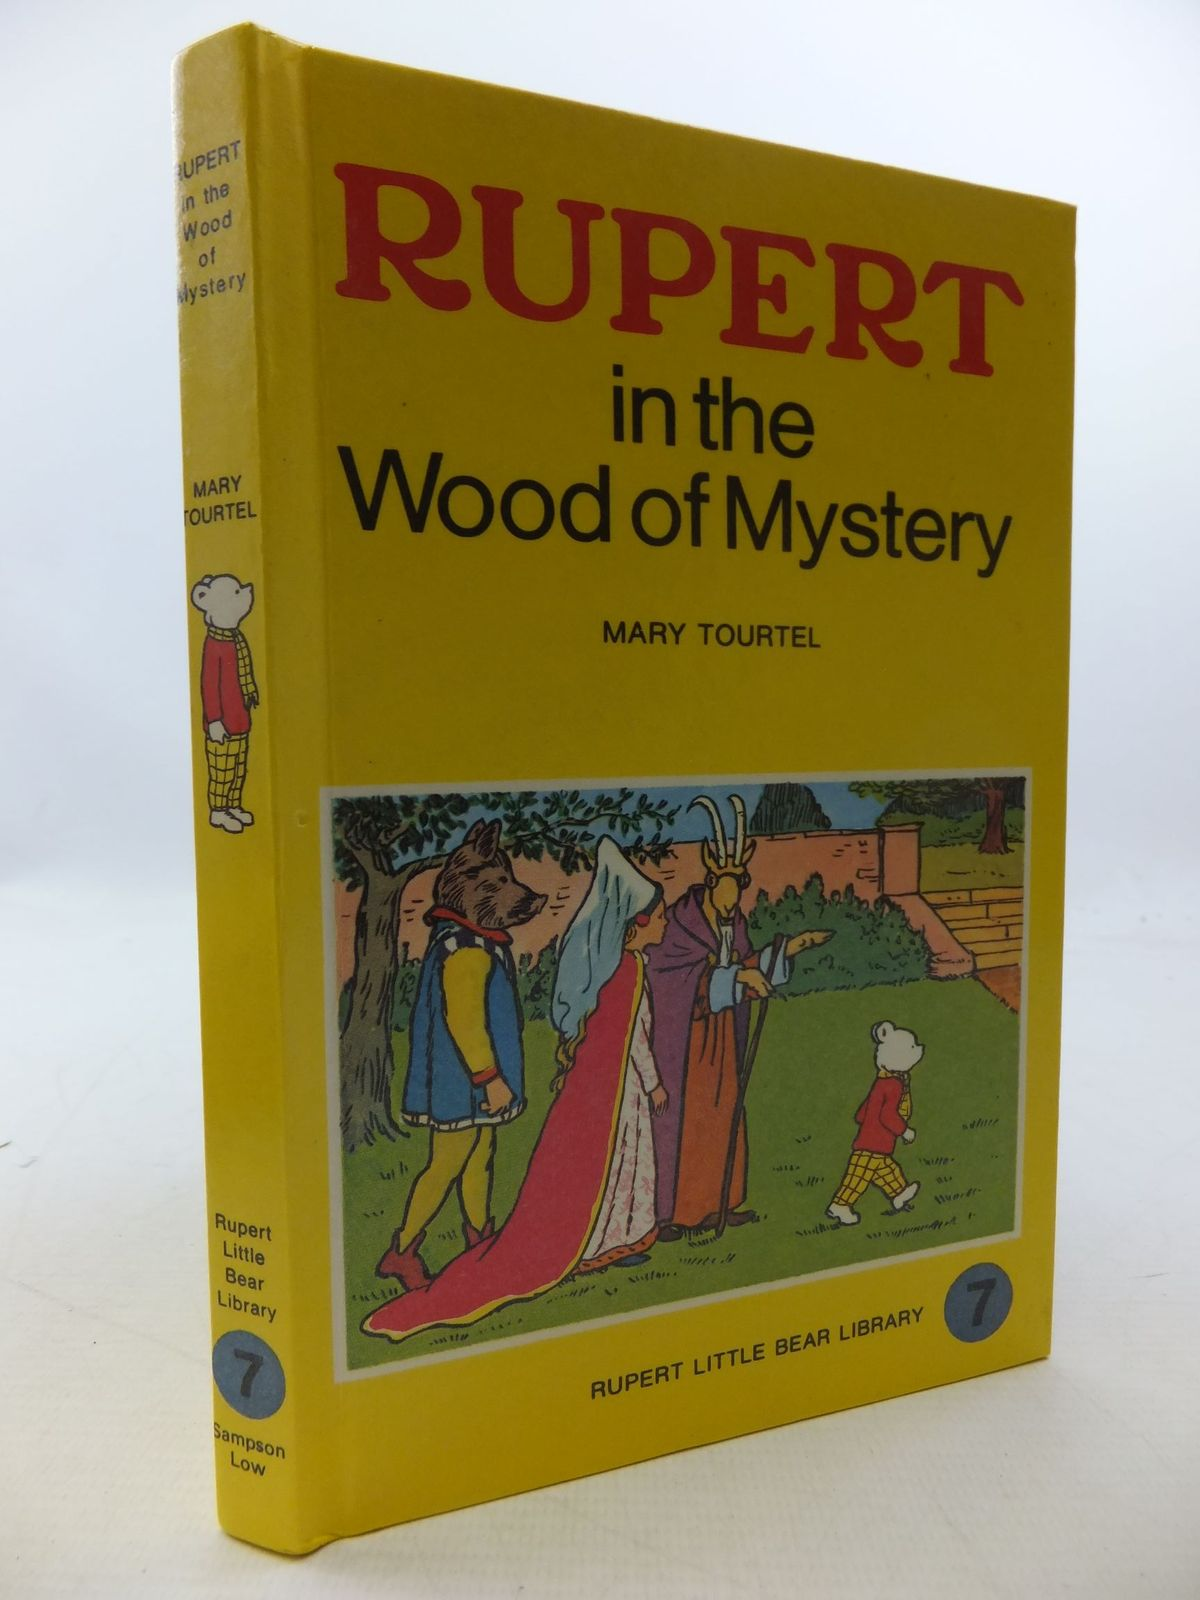 Photo of RUPERT IN THE WOOD OF MYSTERY - RUPERT LITTLE BEAR LIBRARY No. 7 (WOOLWORTH) written by Tourtel, Mary illustrated by Tourtel, Mary published by Sampson Low, Marston & Co. Ltd. (STOCK CODE: 2112764)  for sale by Stella & Rose's Books